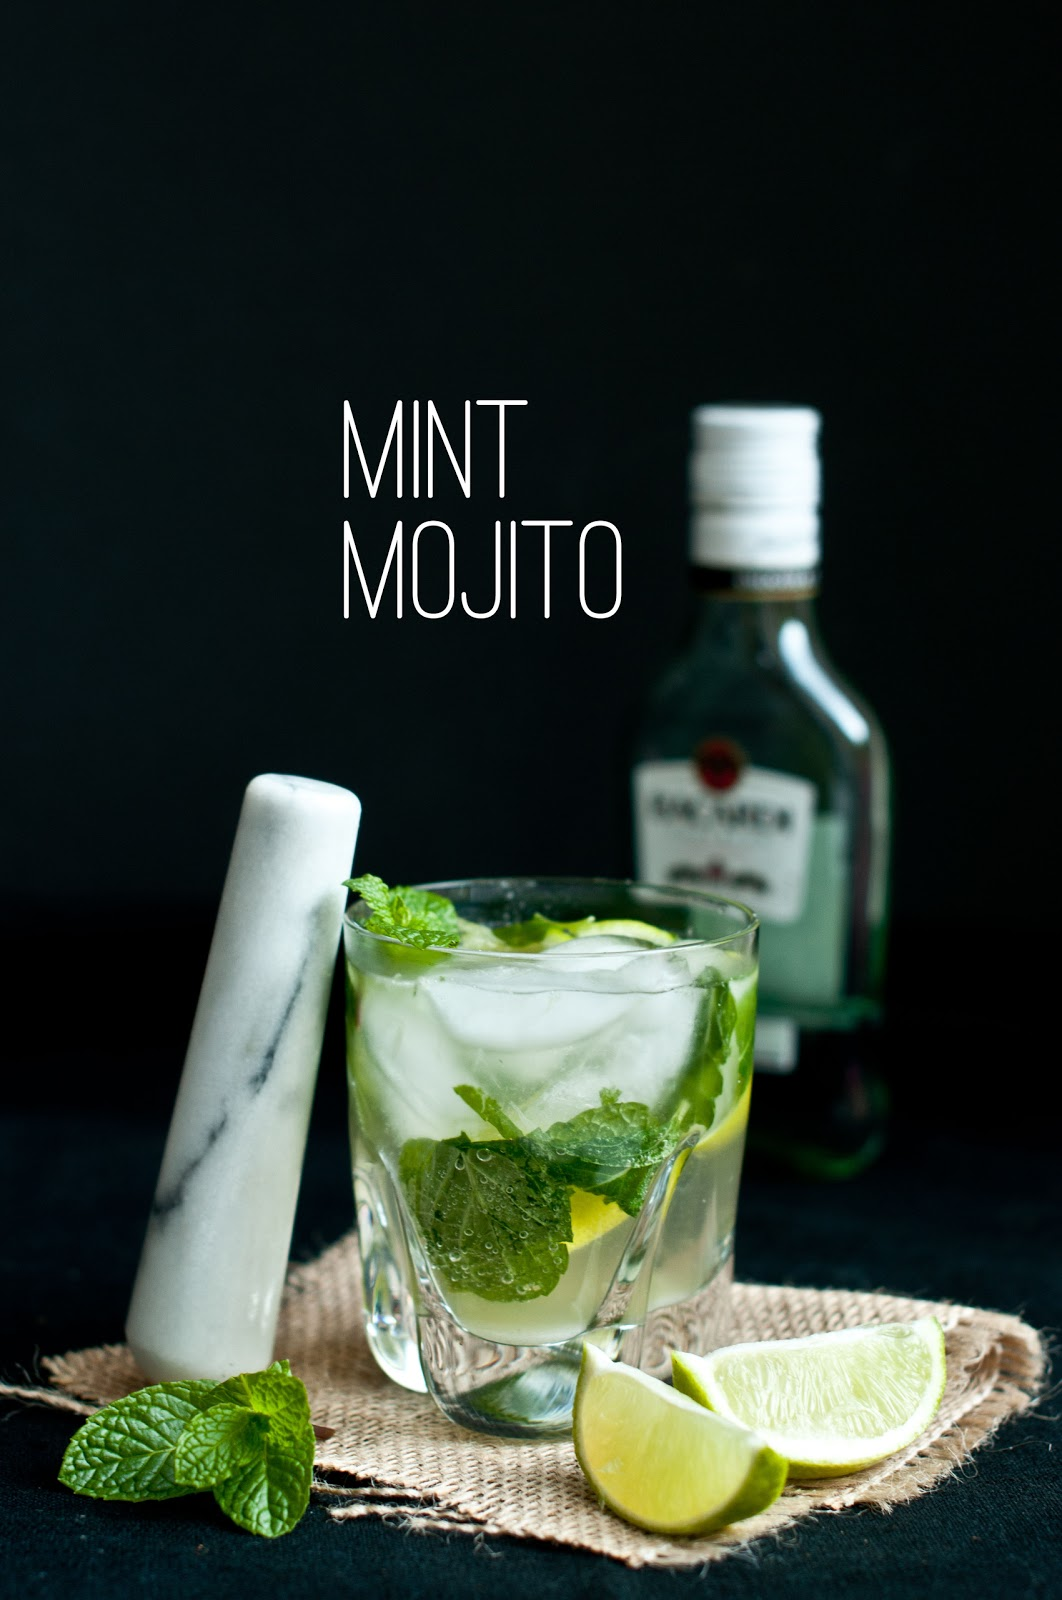 Andy Amp Belle Mint Mojito